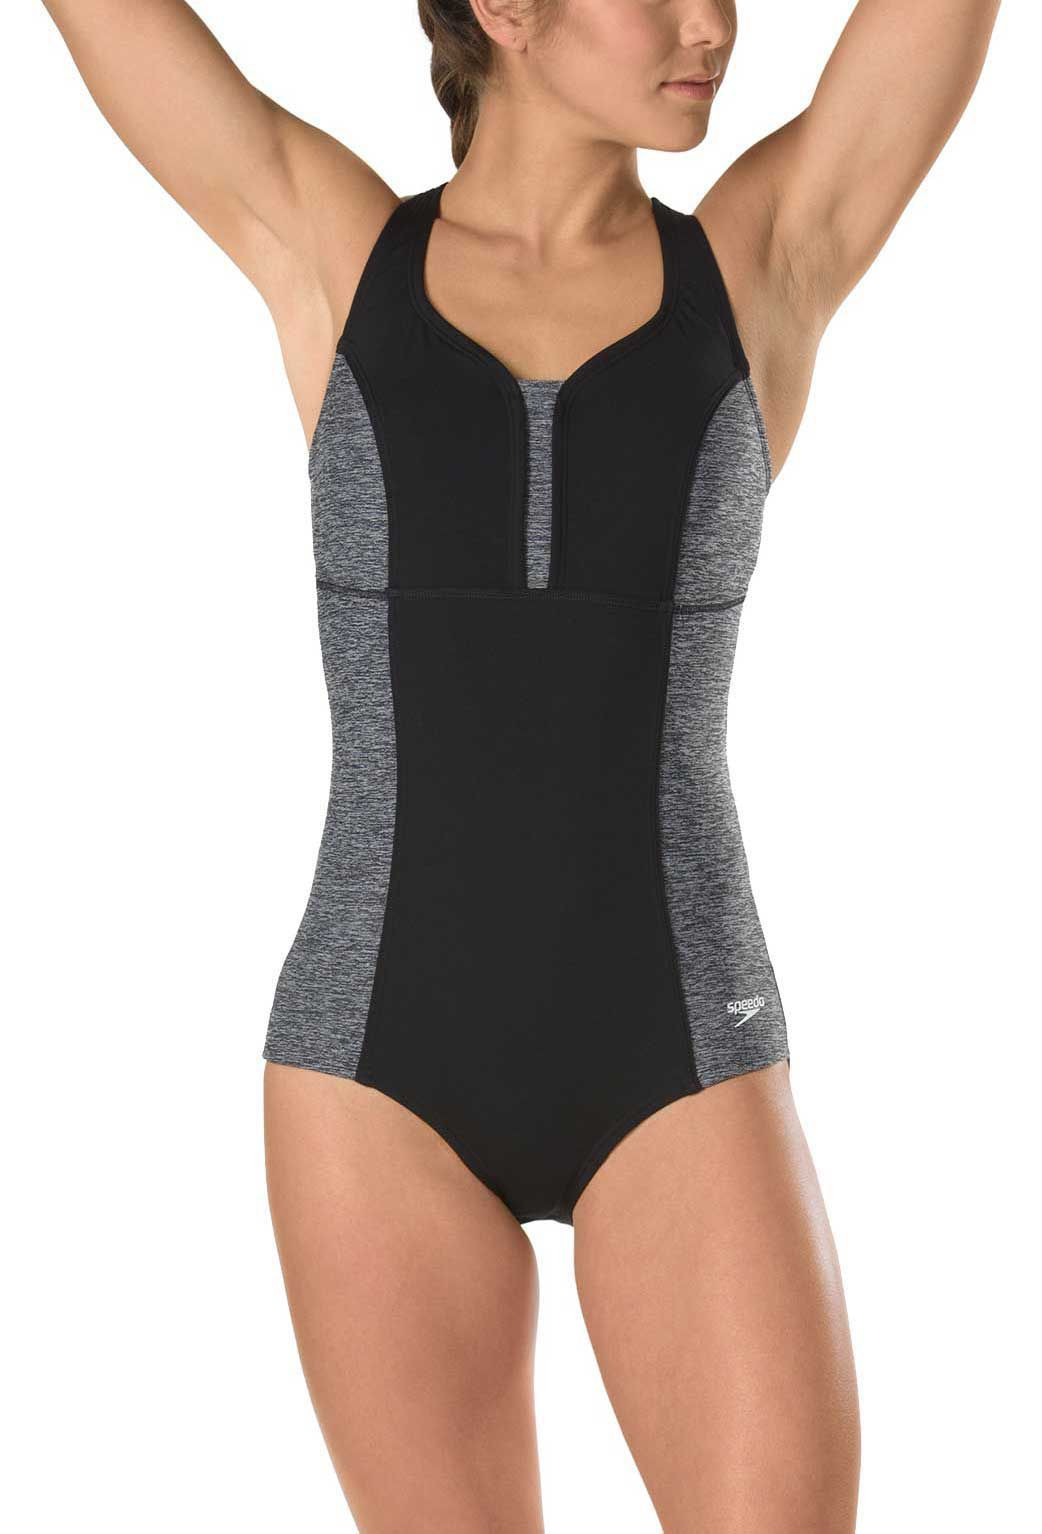 b521e2aff80 Speedo Women's Texture Touchback Swimsuit | DICK'S Sporting  GoodsProposition 65 warning iconProposition 65 warning icon